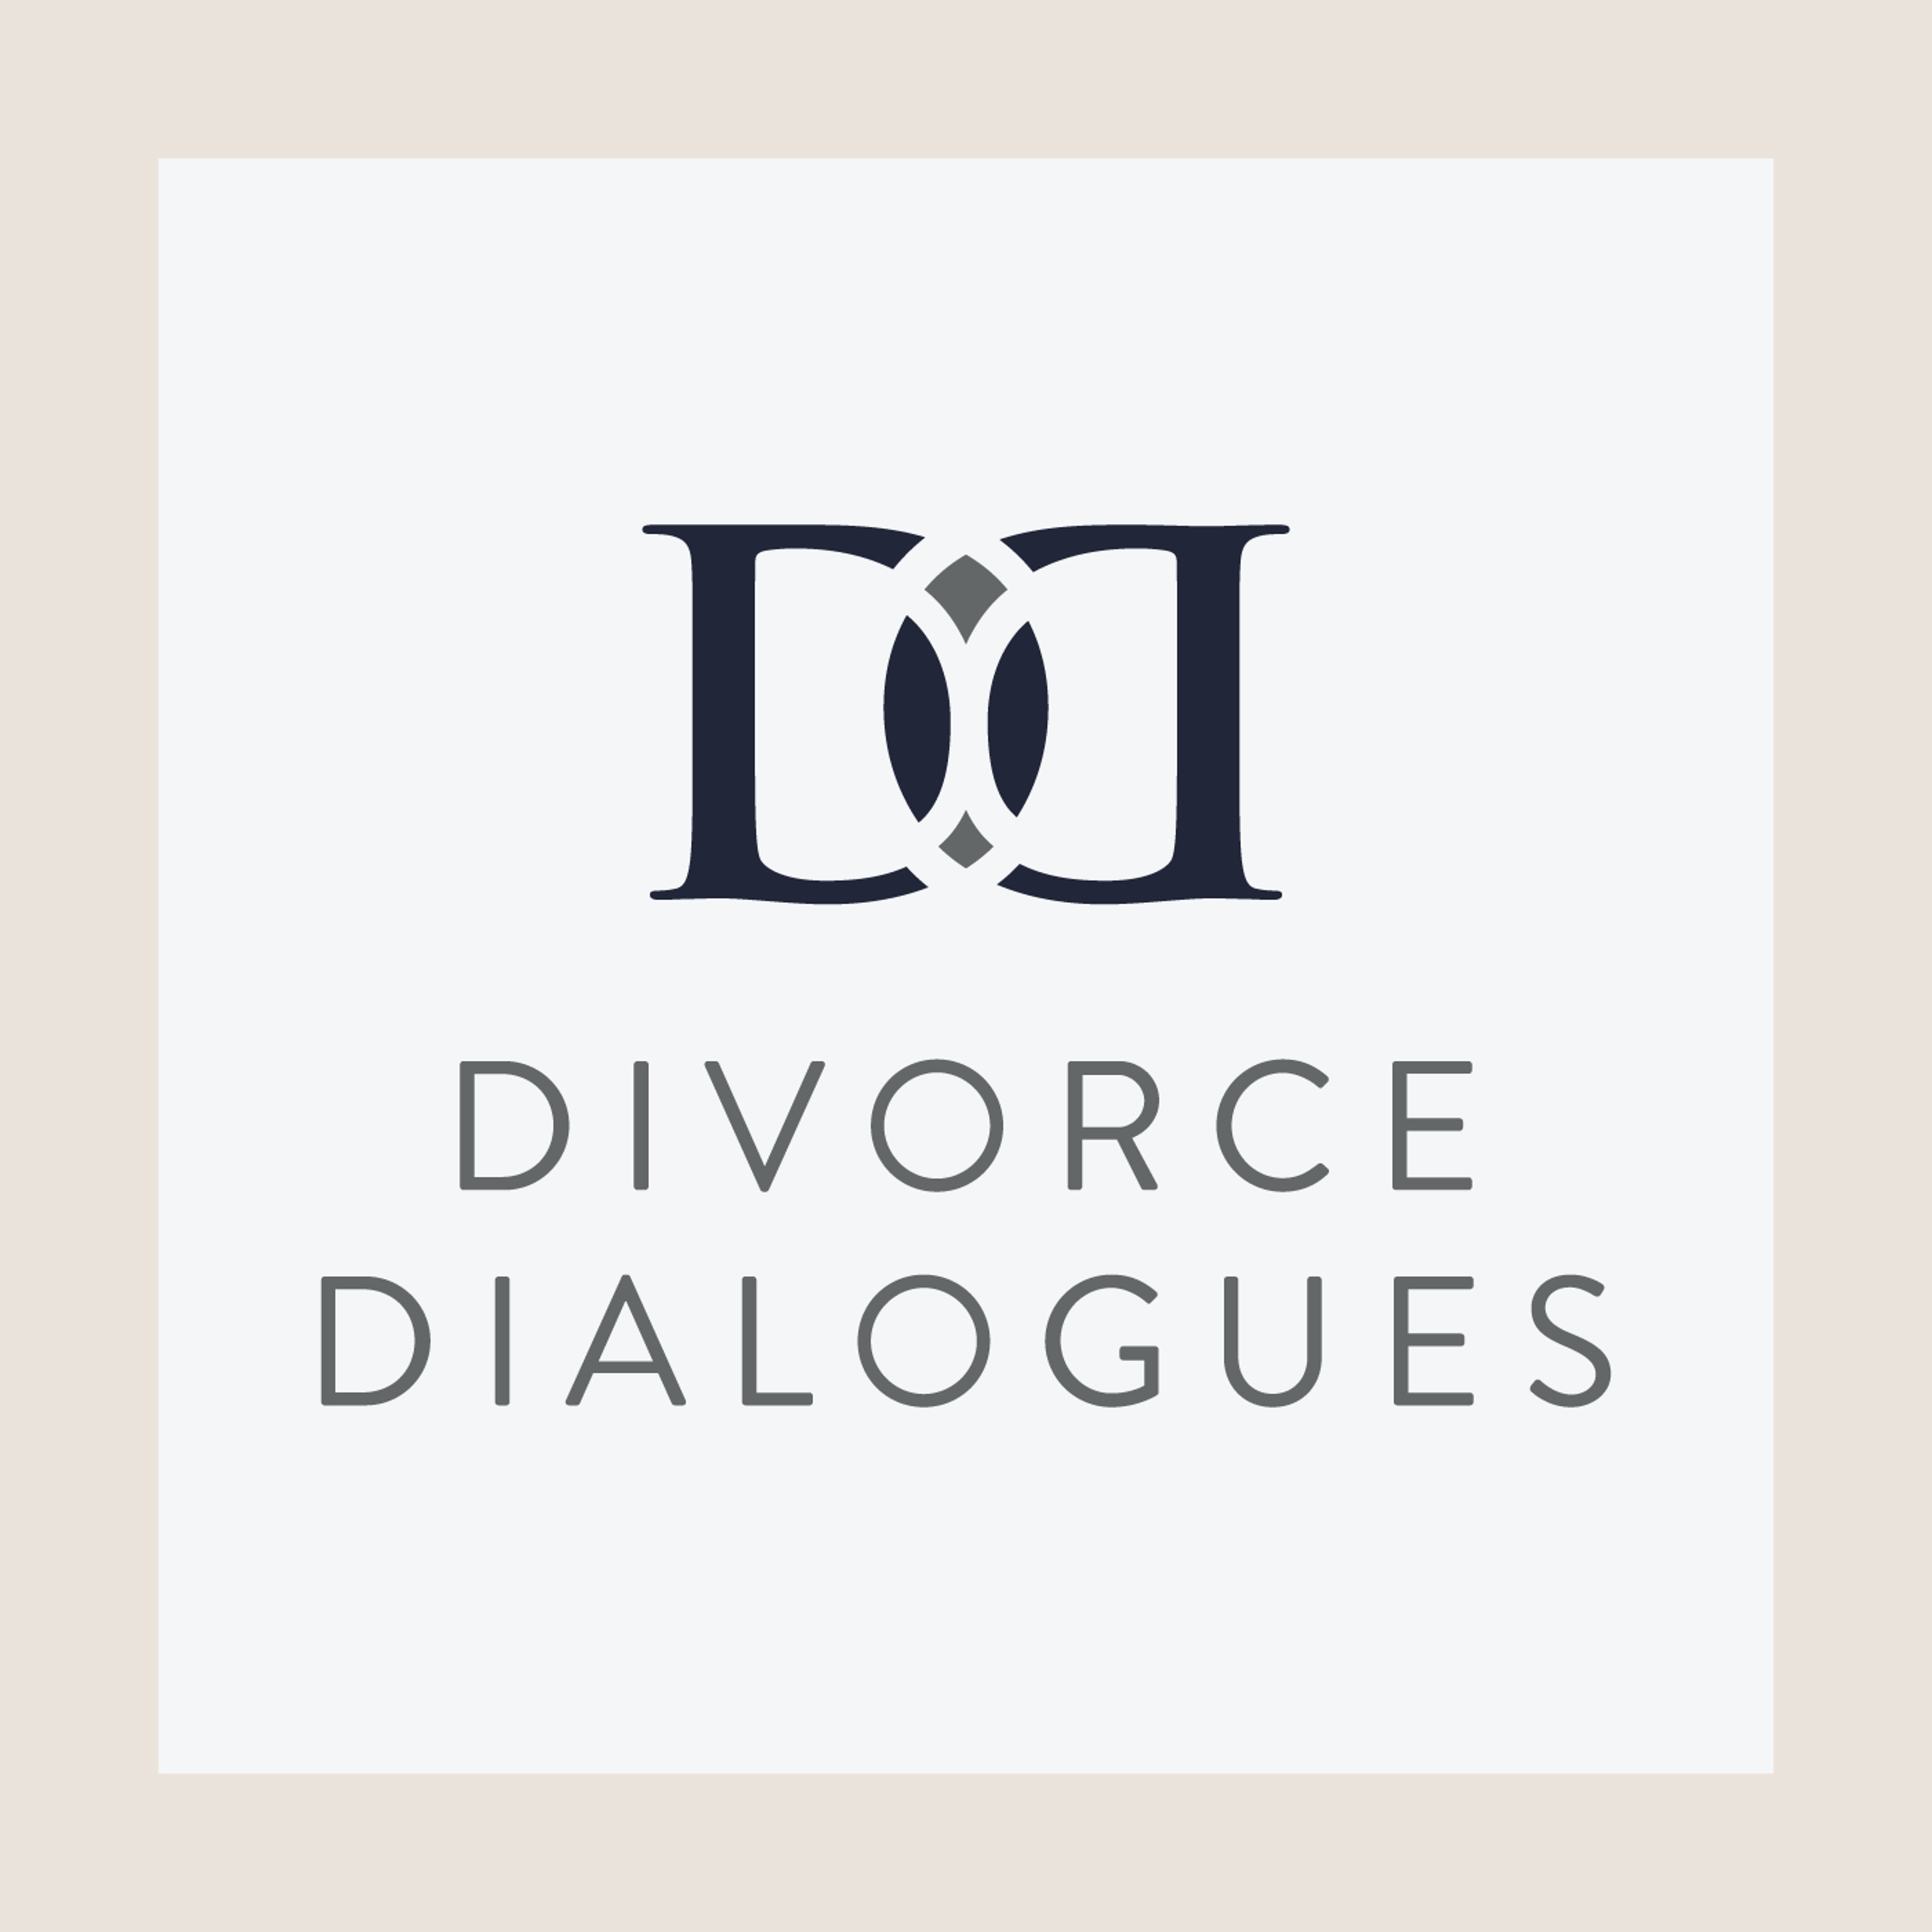 Divorce Dialogues - Become Fully ALIVE Through the Divorce Process with Anne-Louise DePalo